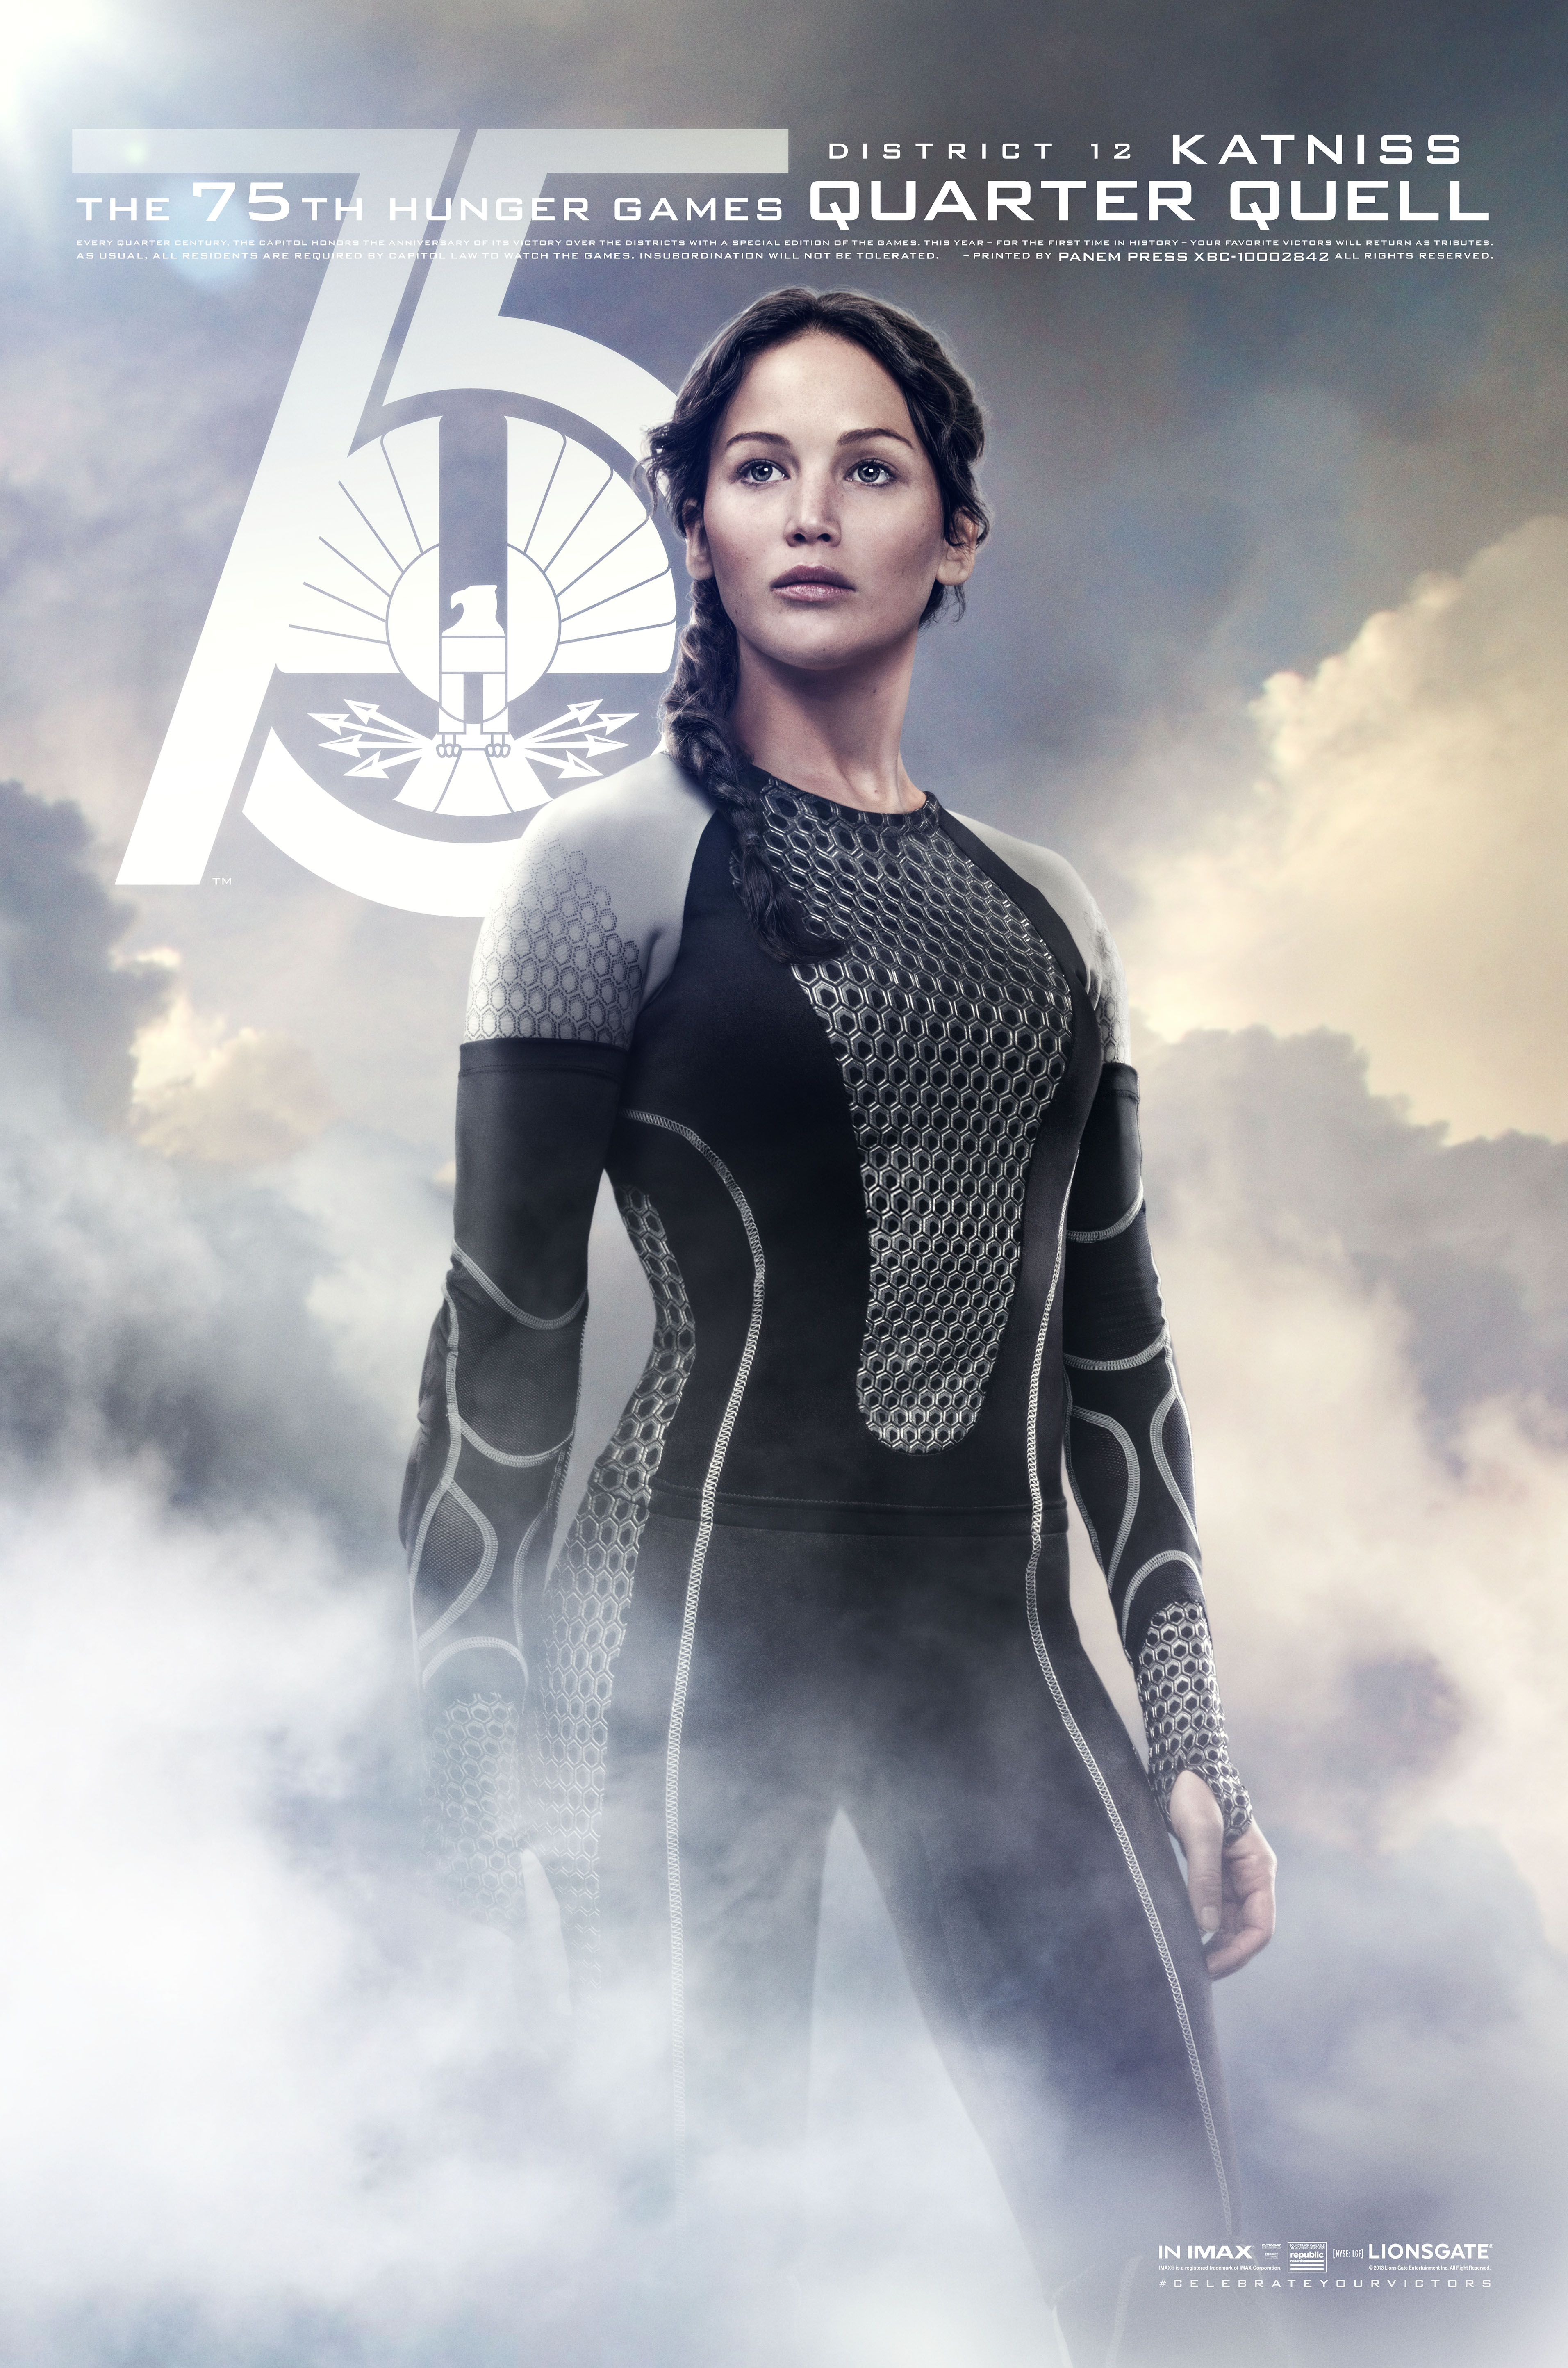 FIN03 Idiom 1Sht QQ Katniss1 Catching Fire Victors Banner Unveiled on The Hunger Games Explorer